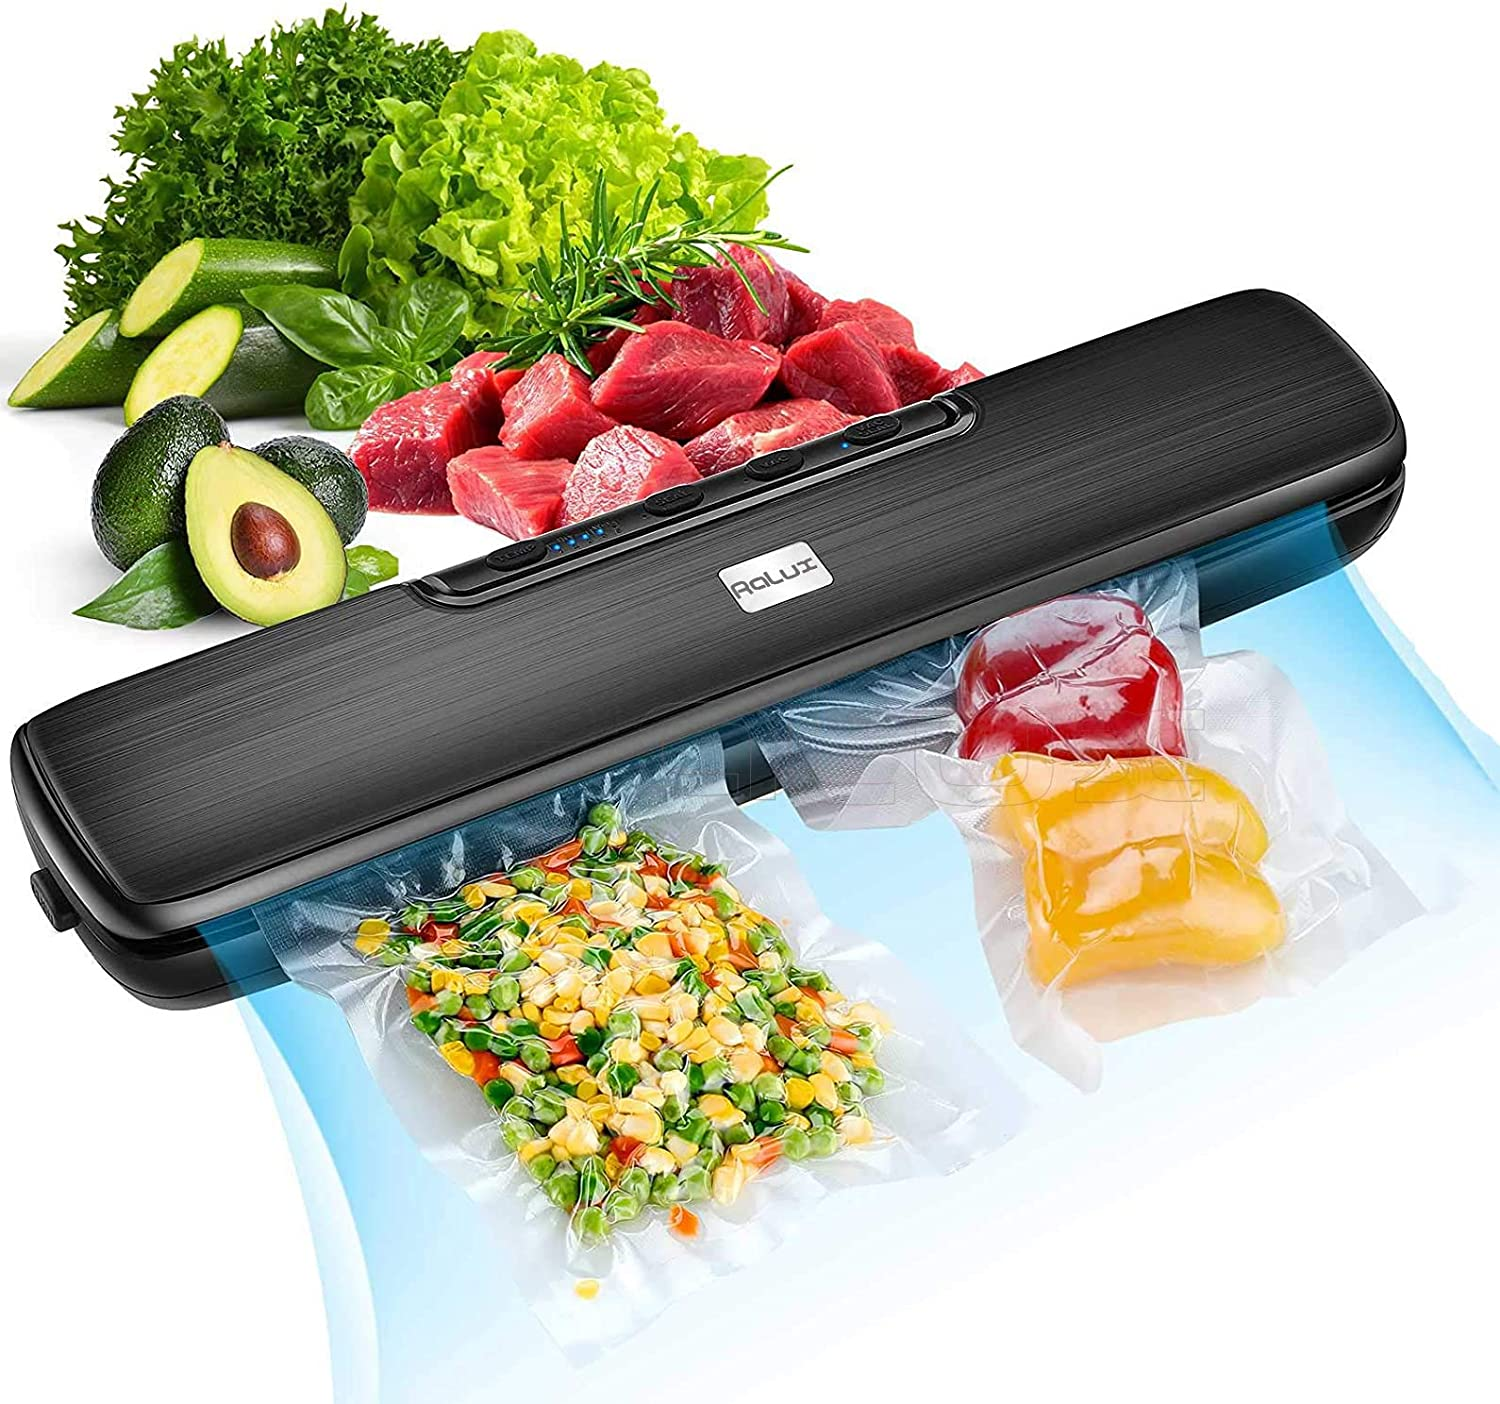 Vacuum Sealer Machine Automatic Food Sealer for Food Saver, Built in Air Sealing System with Vacuum Sealer Kits, Automatic Food Saver with Dry & Wet Food Modes Vacuum System, 15 Sealing Bags included, 5-level Temperature Control/Waterproof/Led Light/Easy to Clean/Portable Design